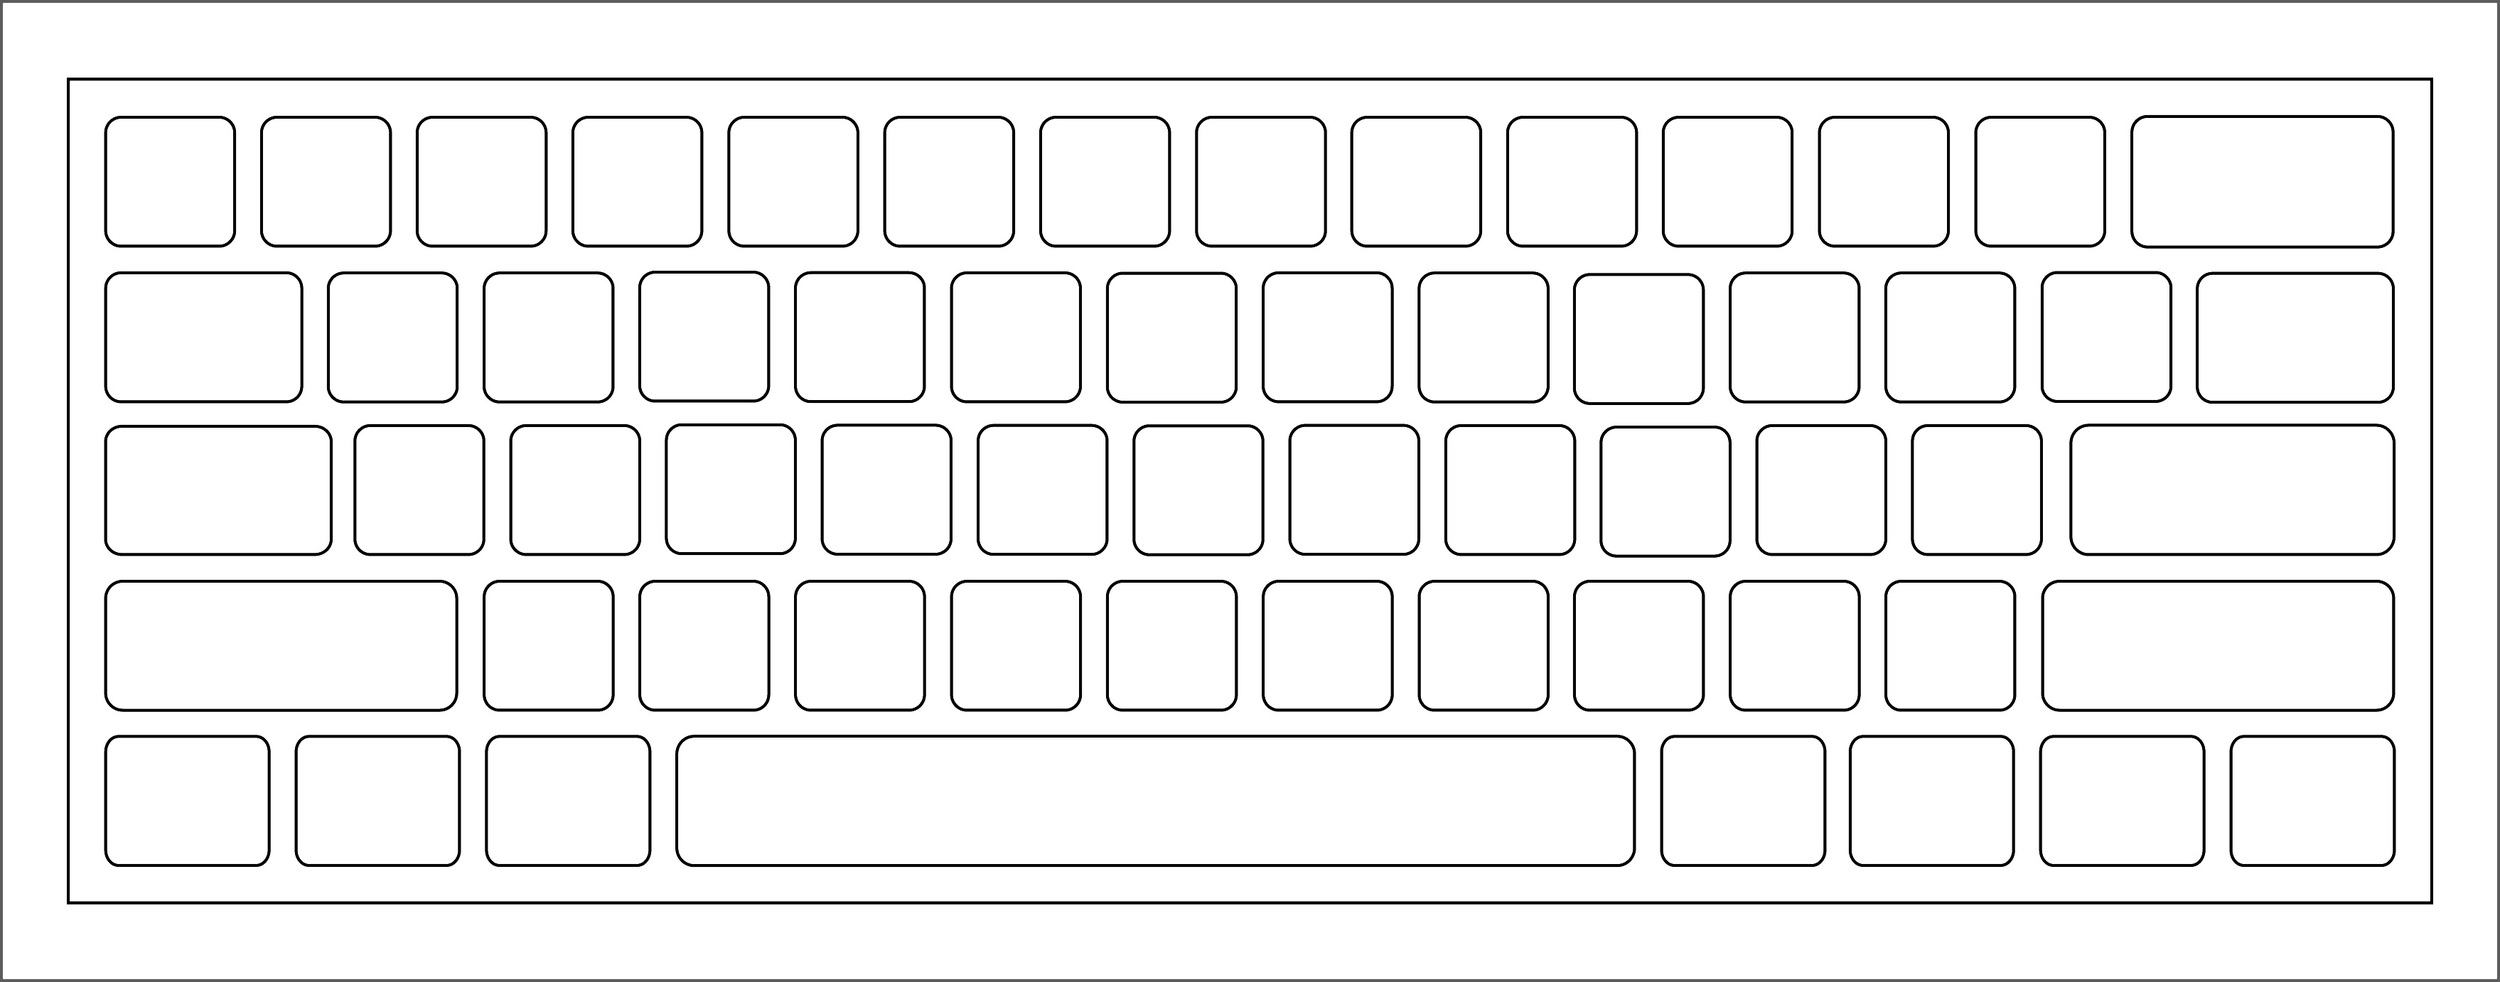 The current keyboard waffle pattern.